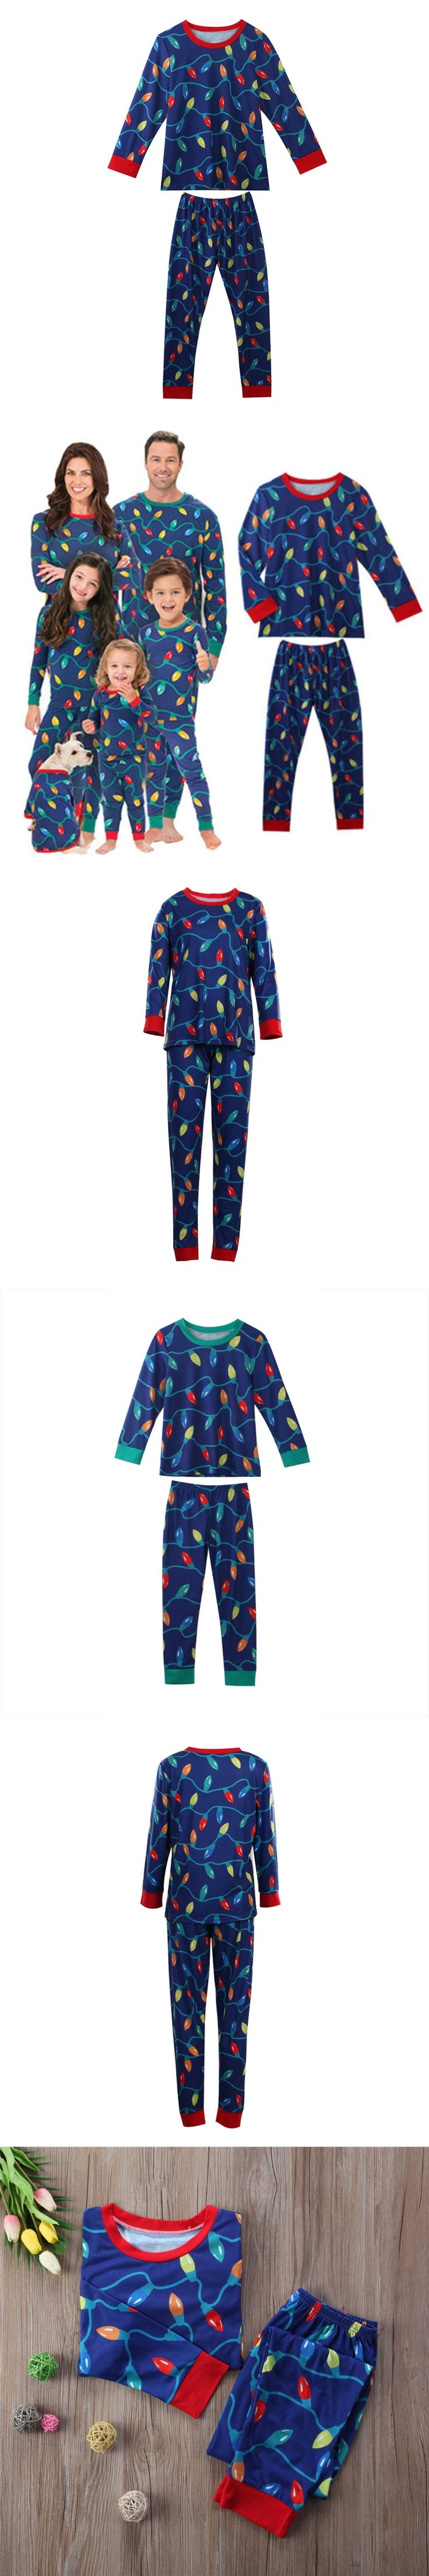 Sleepytime Family Matching Christmas Pajamas Set Women Baby Deer Sleepwear Nightwear Fashion Dad Kids Mom New Year Family Sets